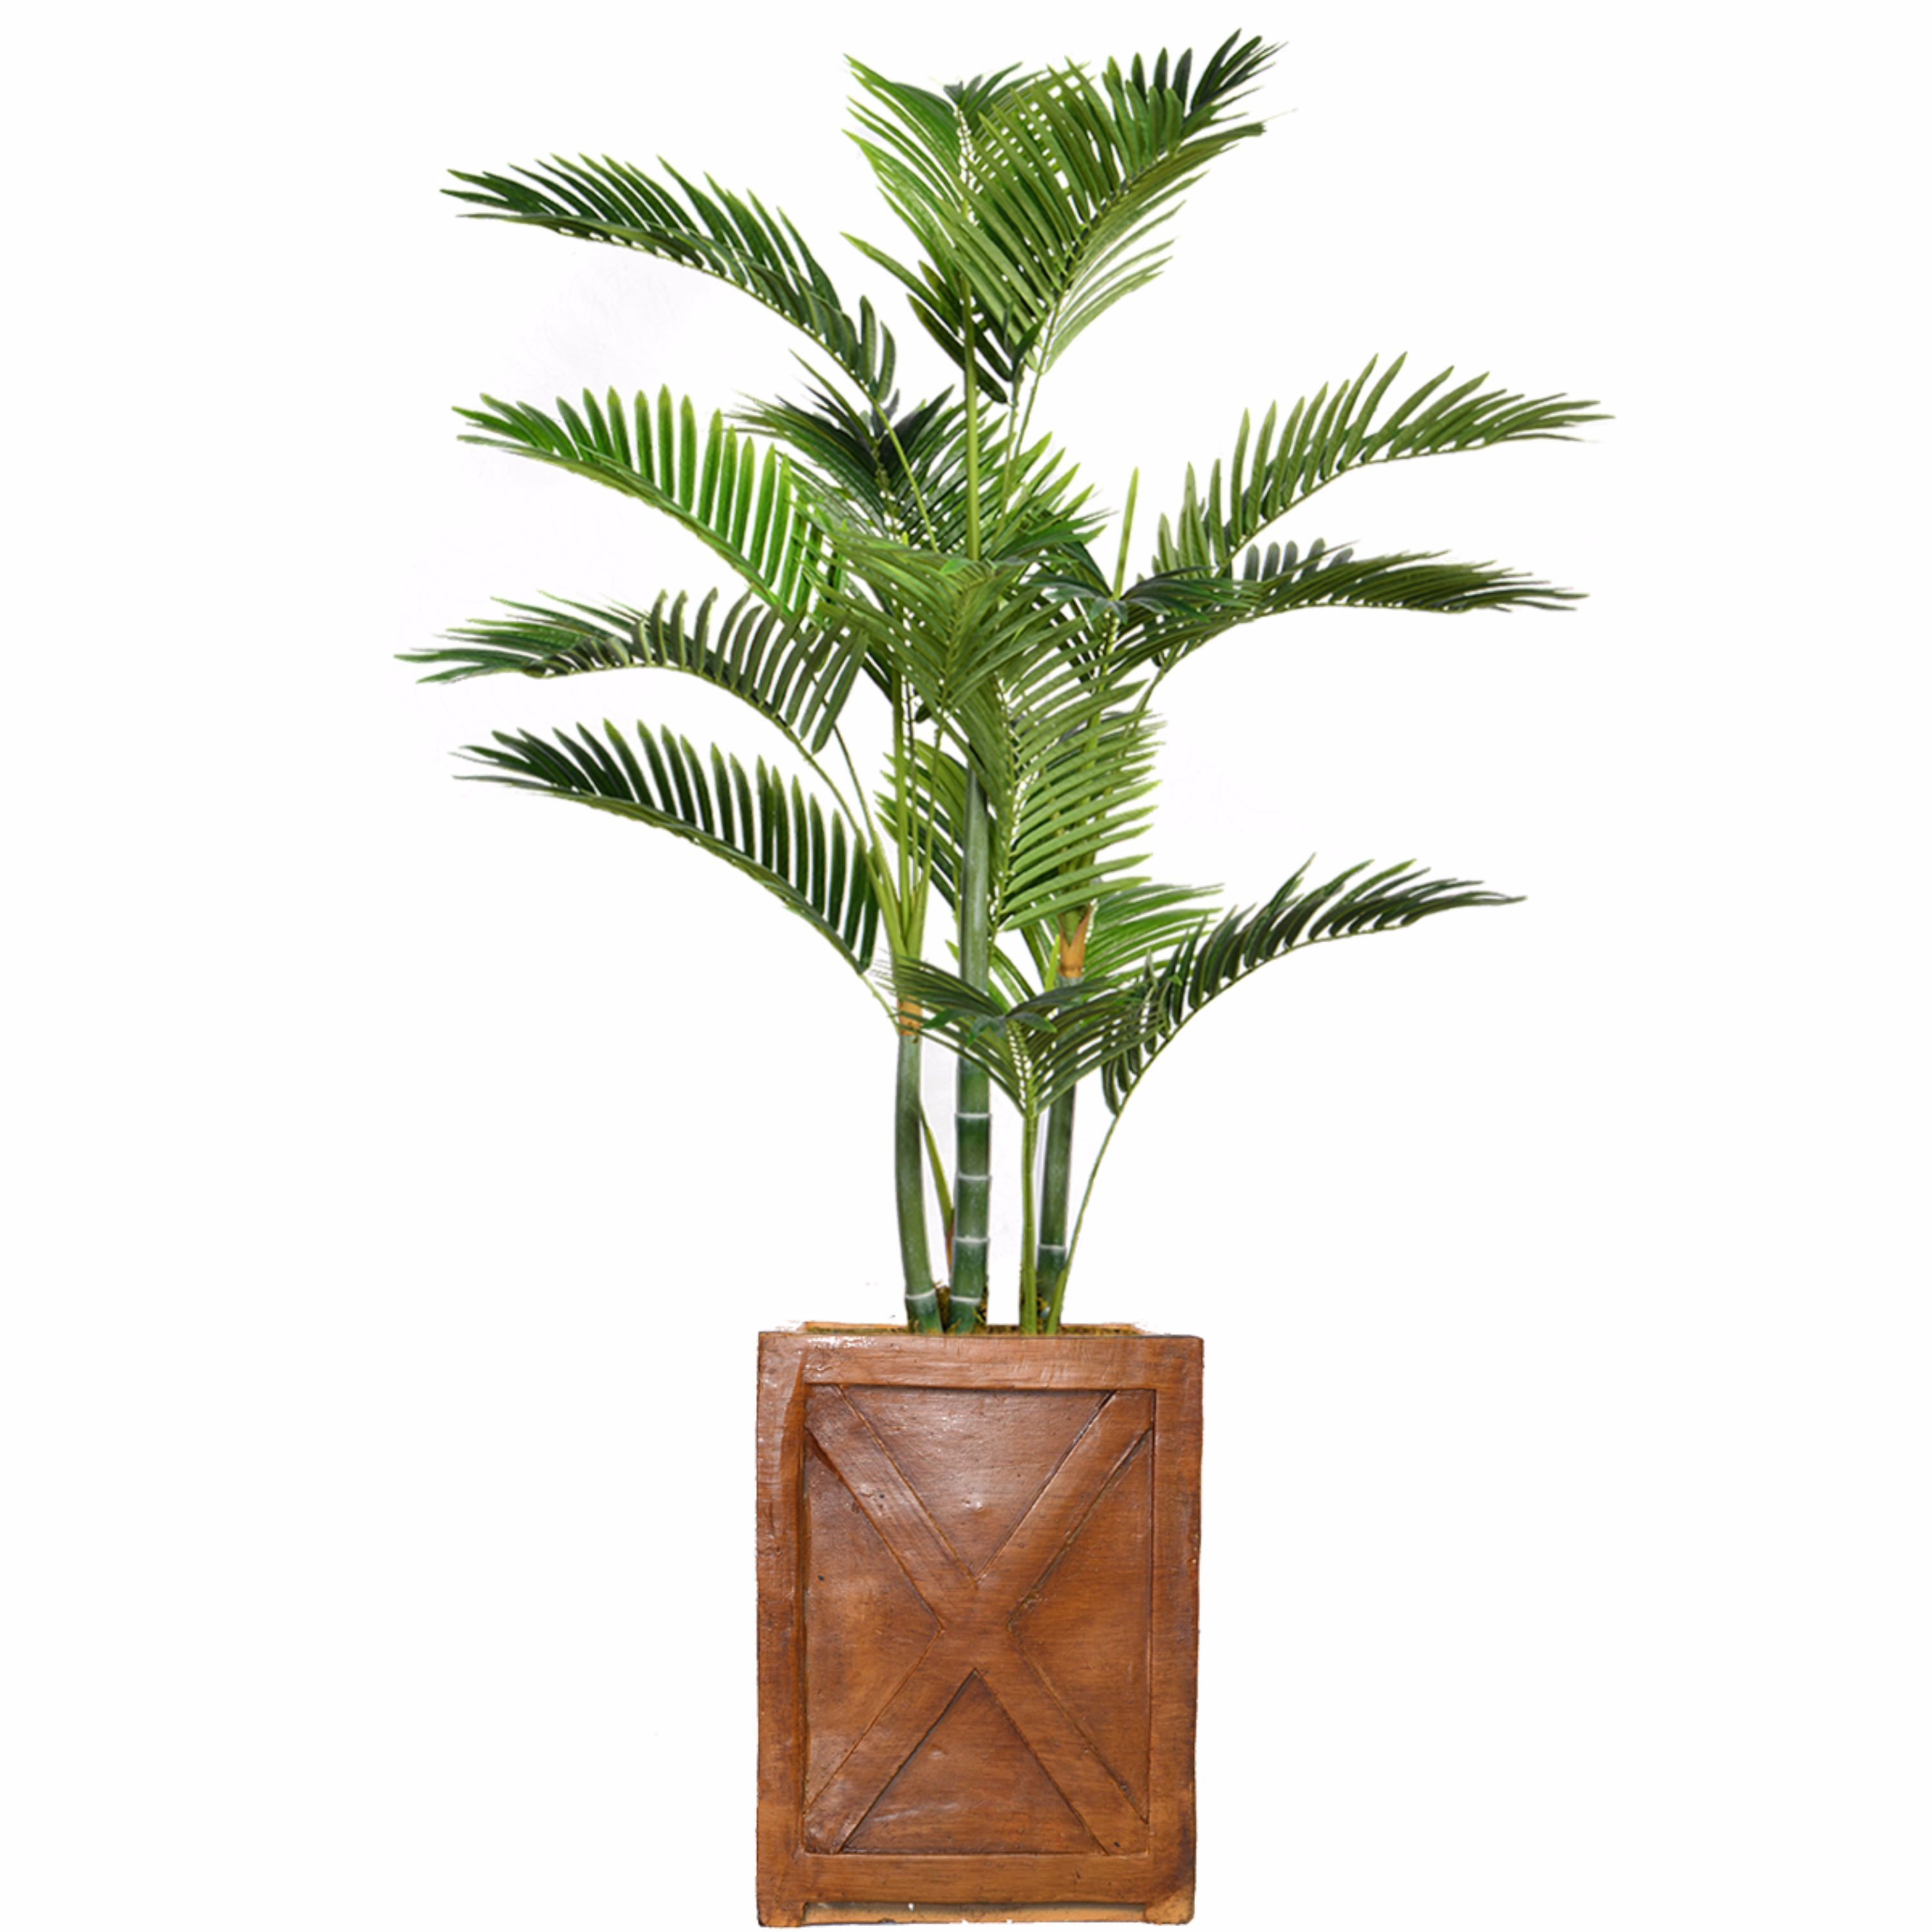 """57"""" Tall Palm Tree Artificial Indoor/ Outdoor Decorative Faux with Burlap Kit and Fiberstone Planter By Minx NY"""